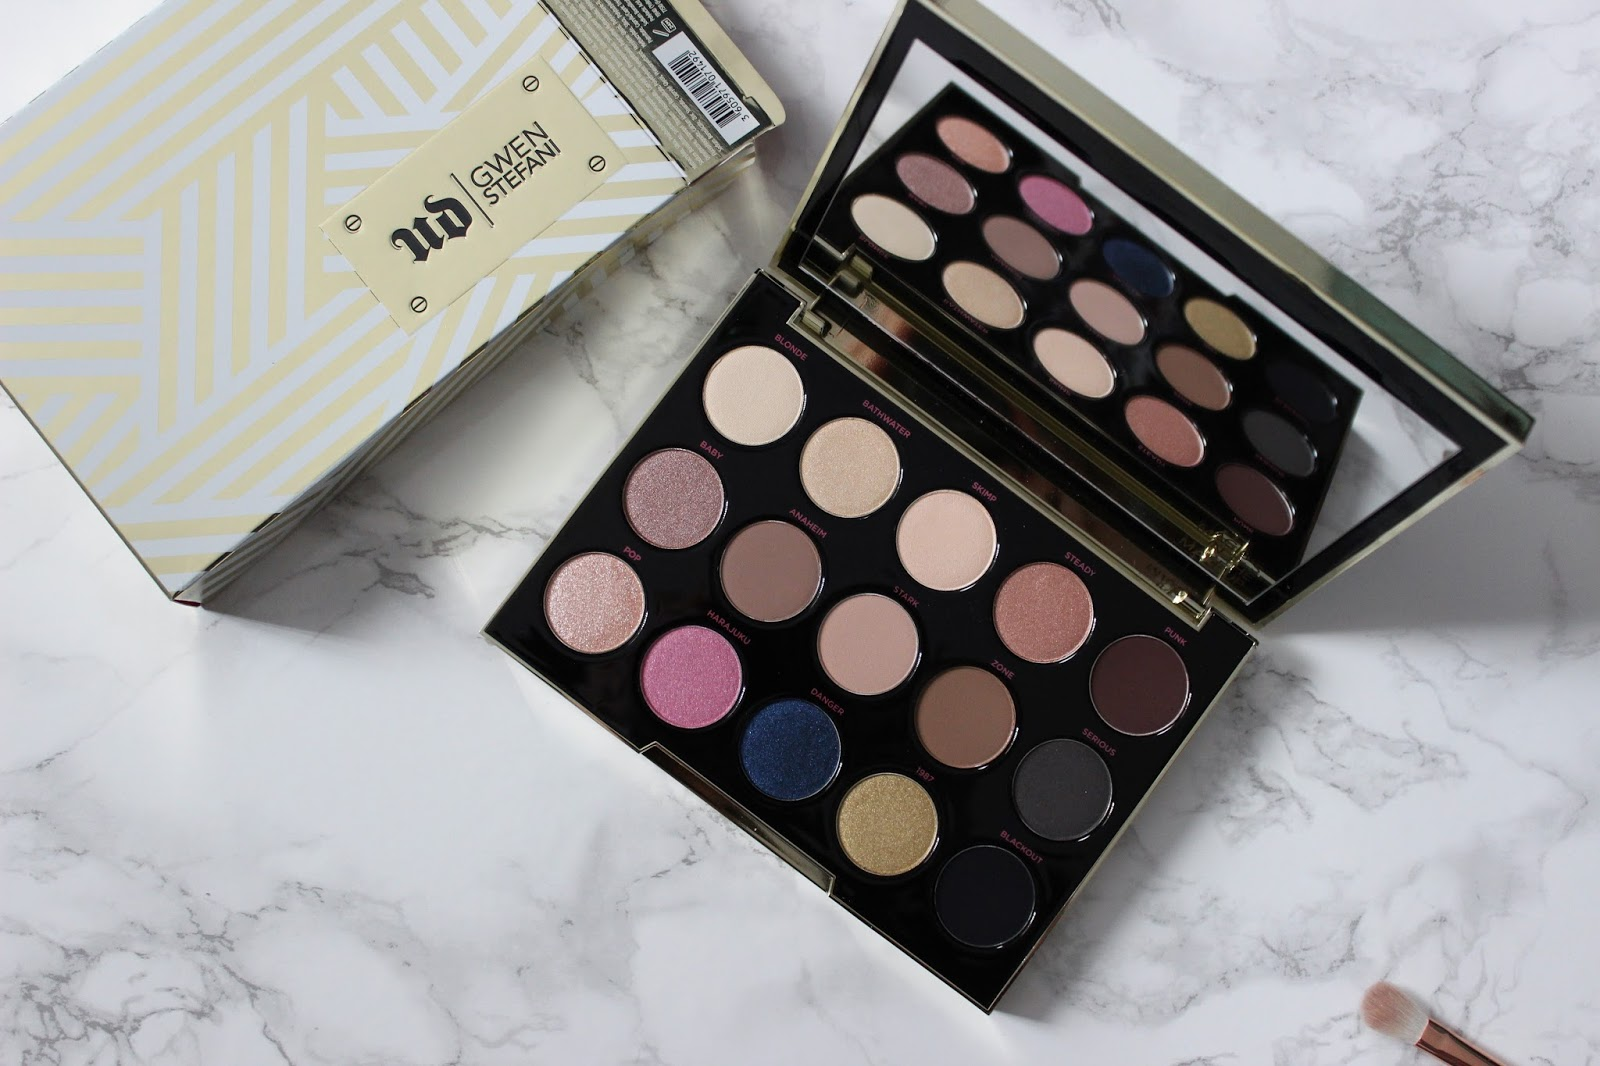 Gwen Stefani x Urban Decay palette review